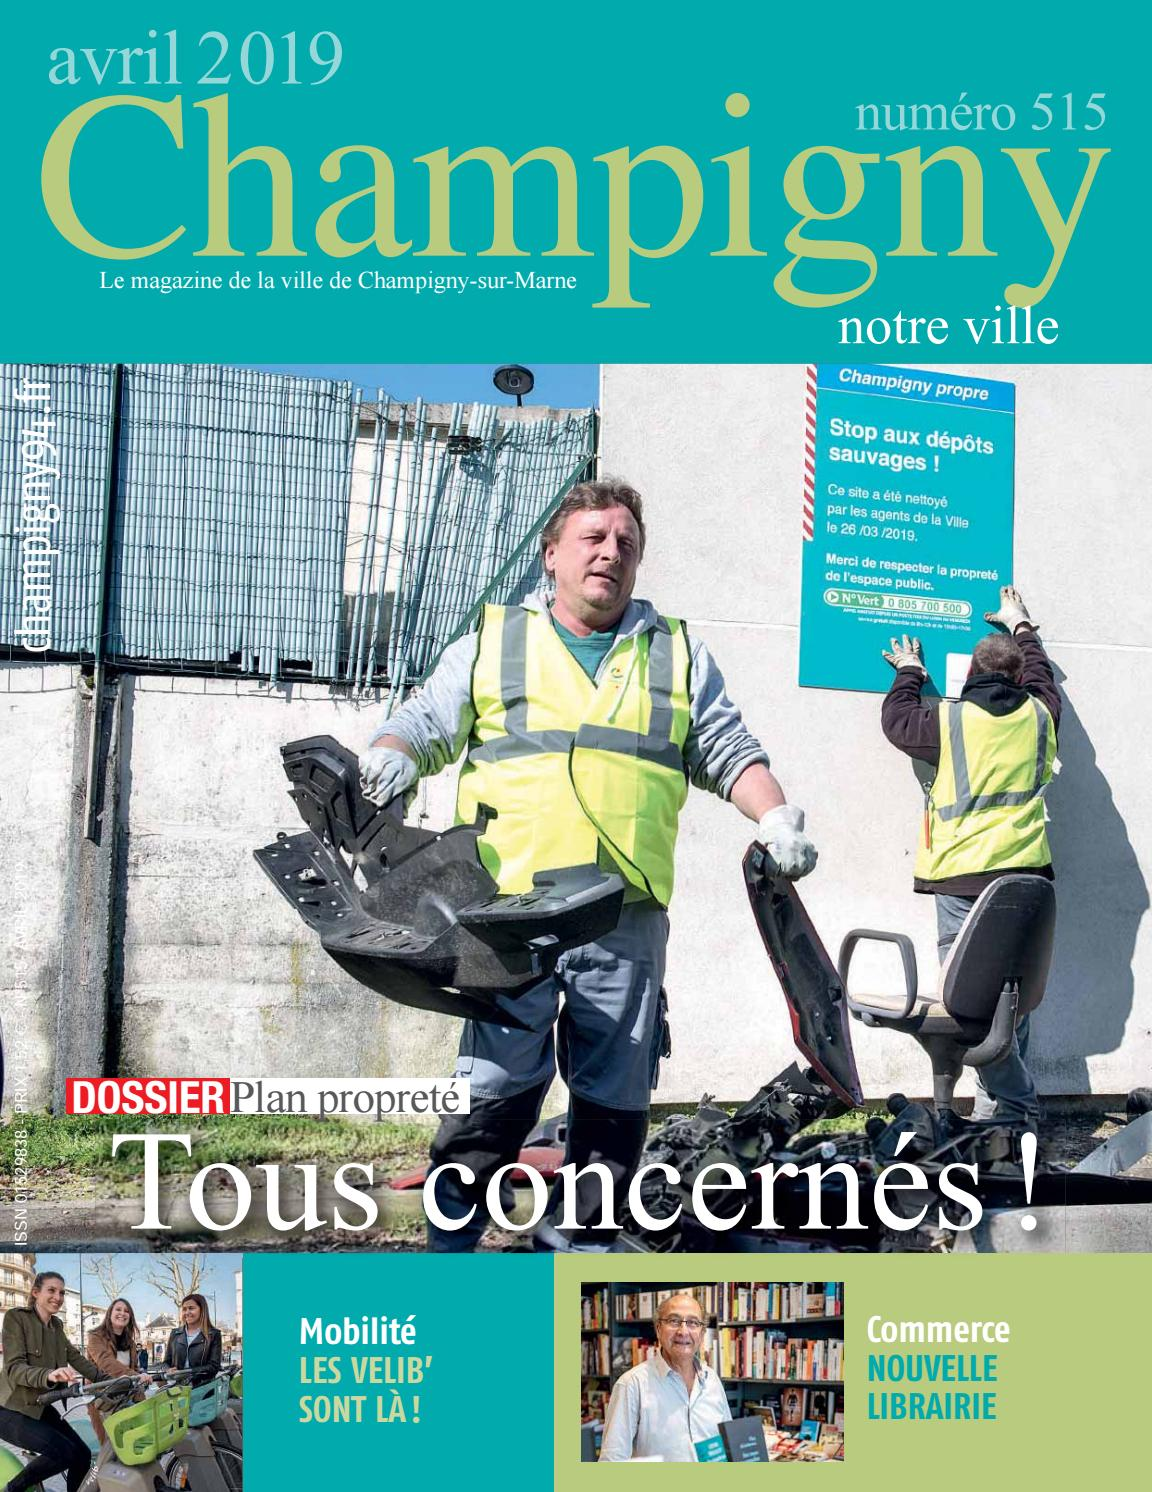 eaef4f6bcad Champigny notre Ville n°515 - avril 2019 by N R - issuu